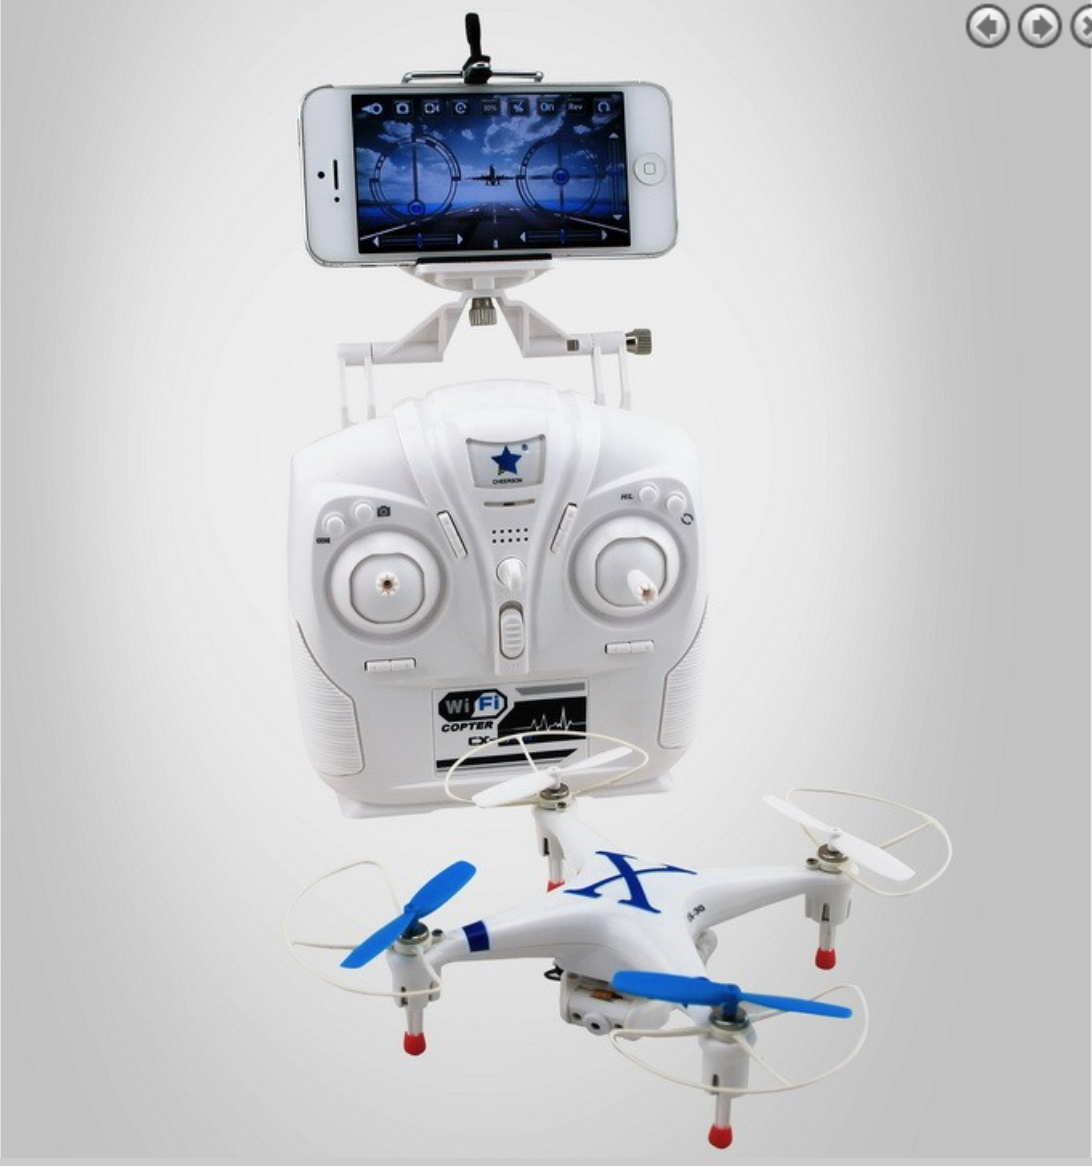 Cheerson CX-30W Wi-Fi FPV Quadcopter Blue